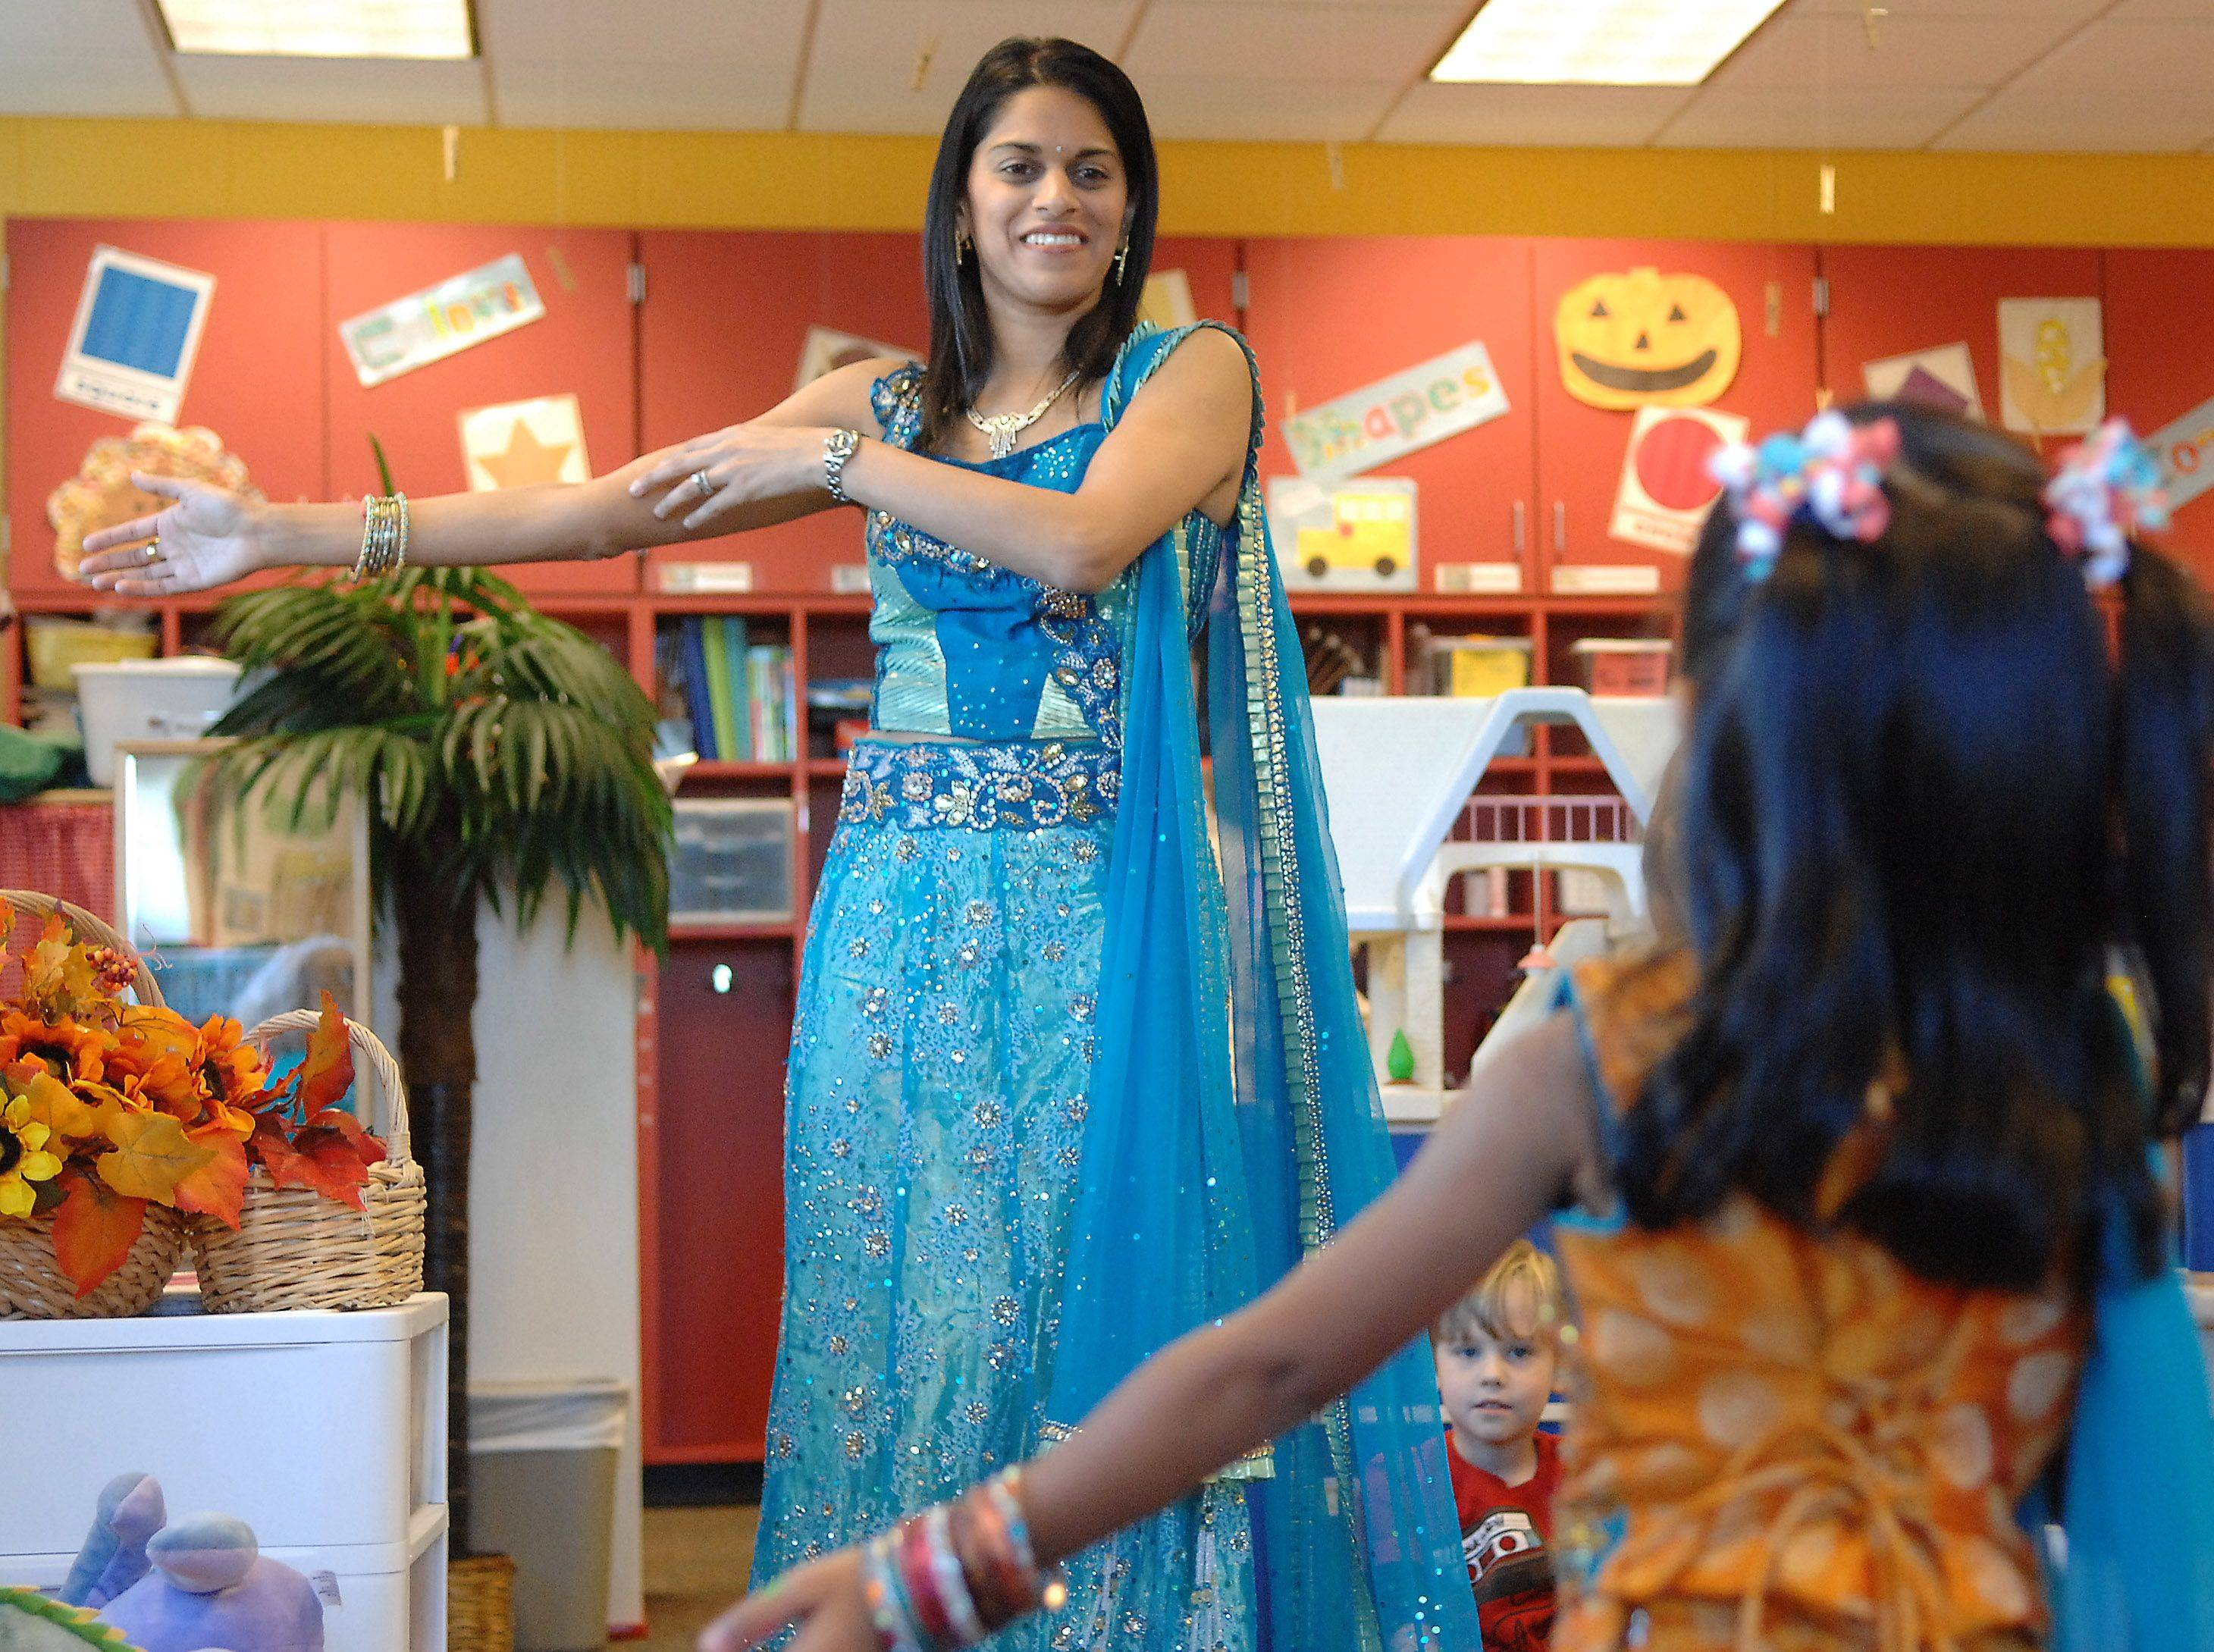 Liza Jain of Geneva helps lead her daughter Anishka, 3, in a modern Indian Bollywood-style dance while teaching Anishka's preschool classmates about the Indian festival of Diwali Tuesday at Friendship Station in Geneva.